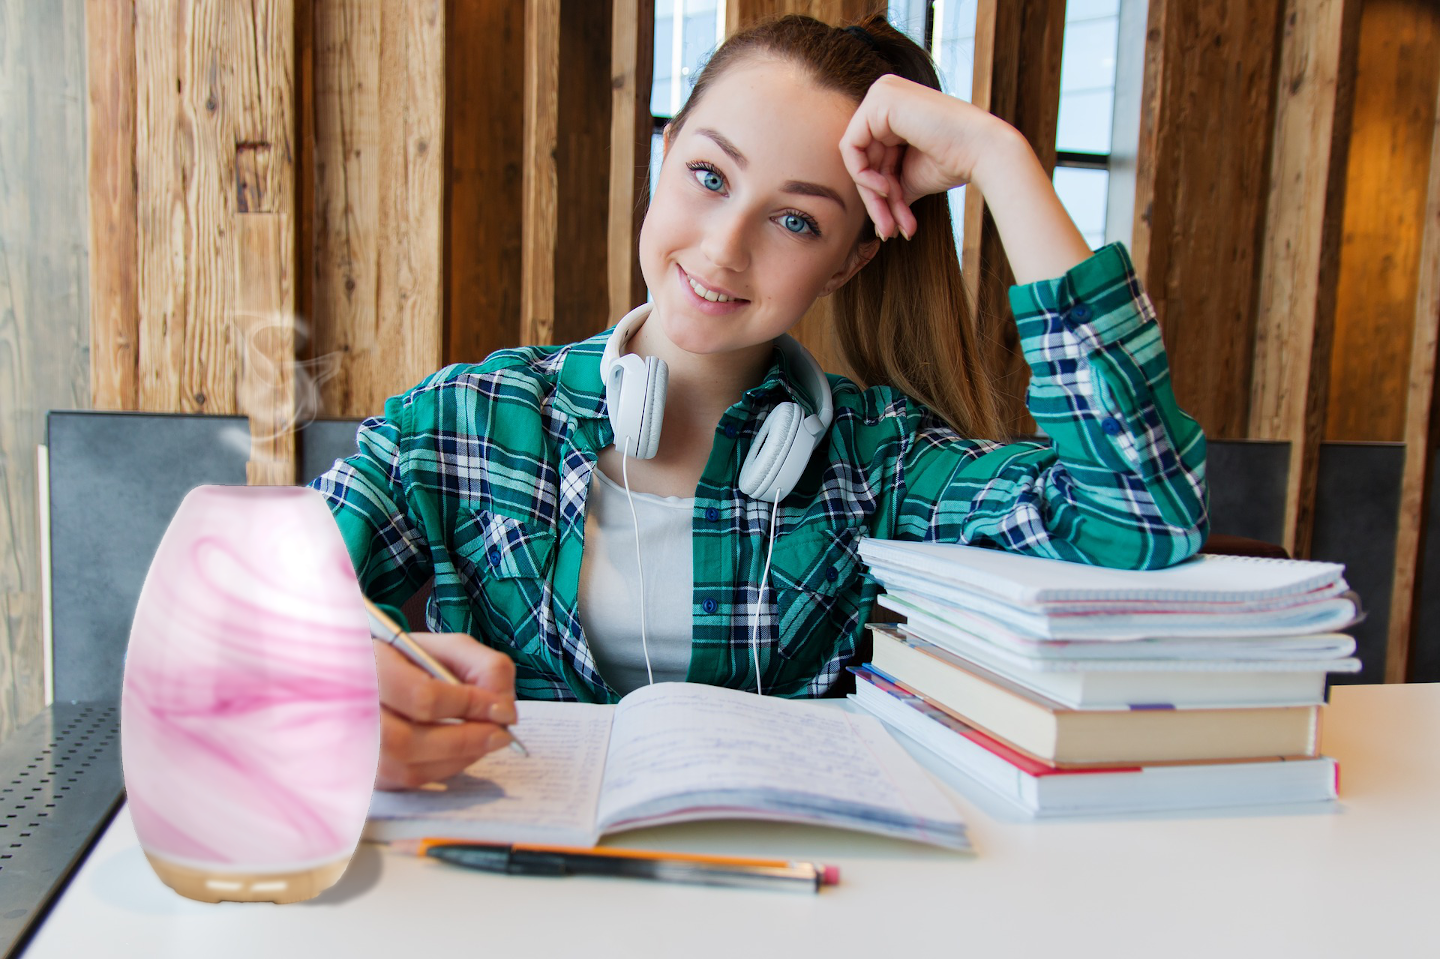 Smiling Girl Studying With Aroma Swirl Pink